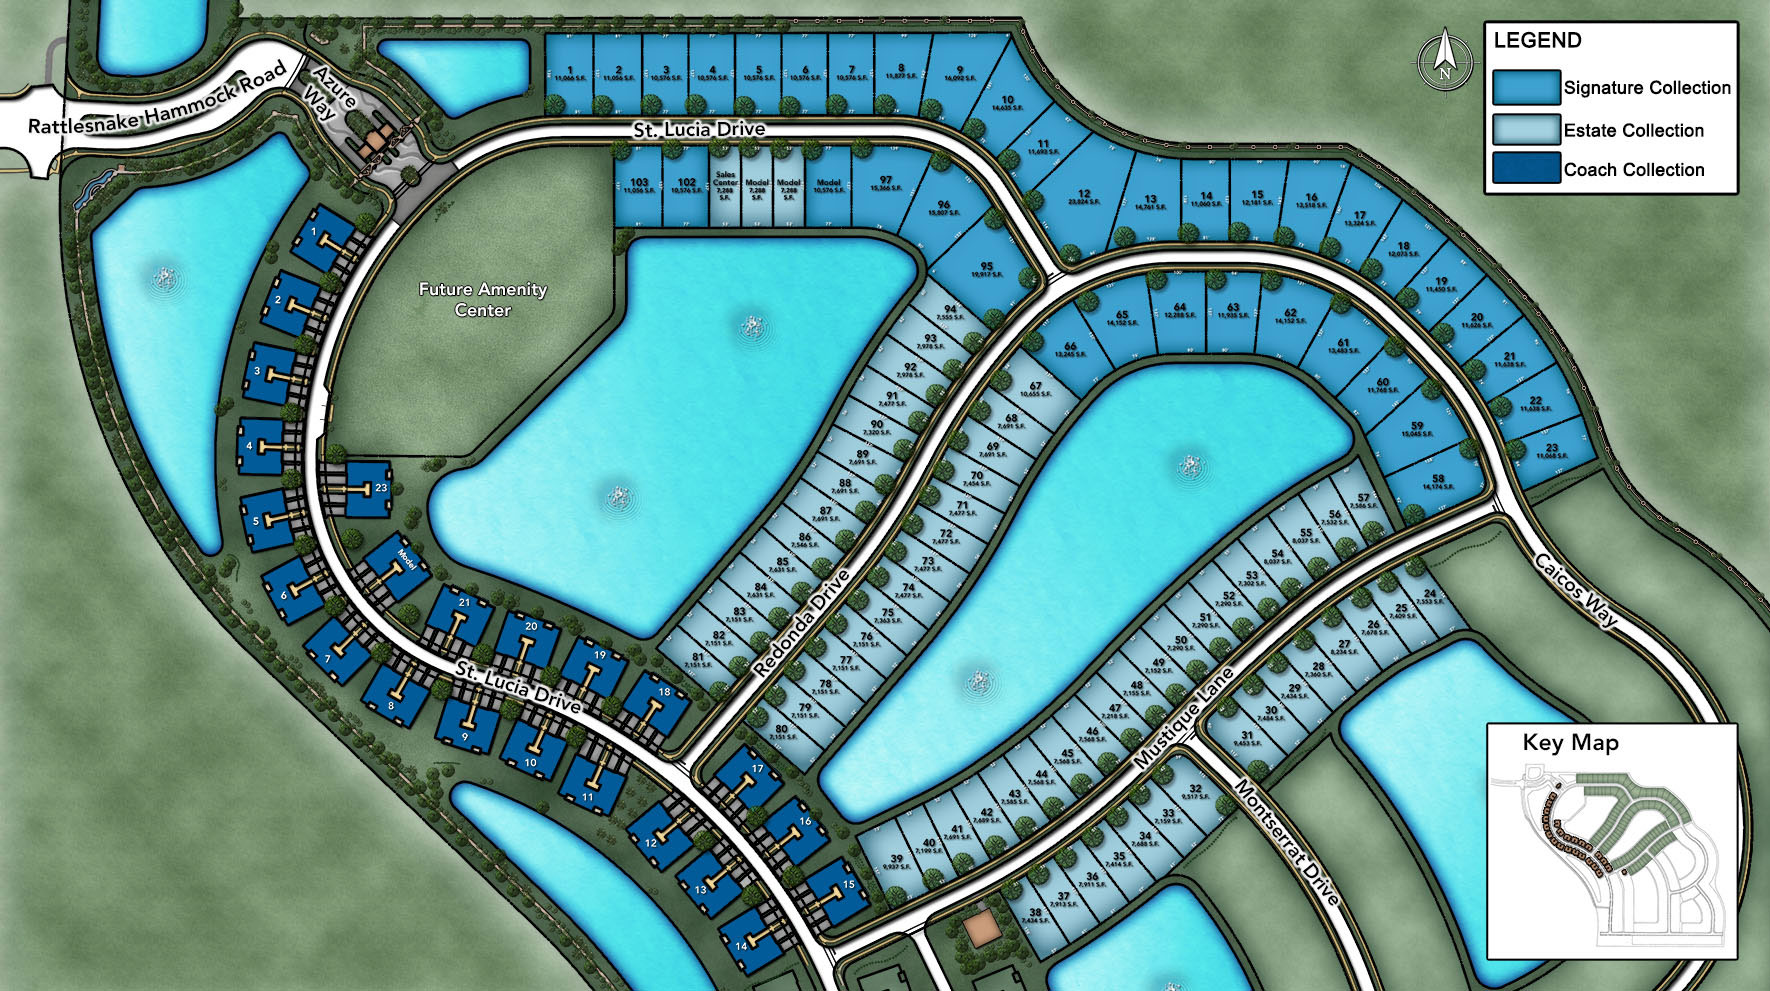 Azure at Hacienda Lakes - Estate Collection Site Plan